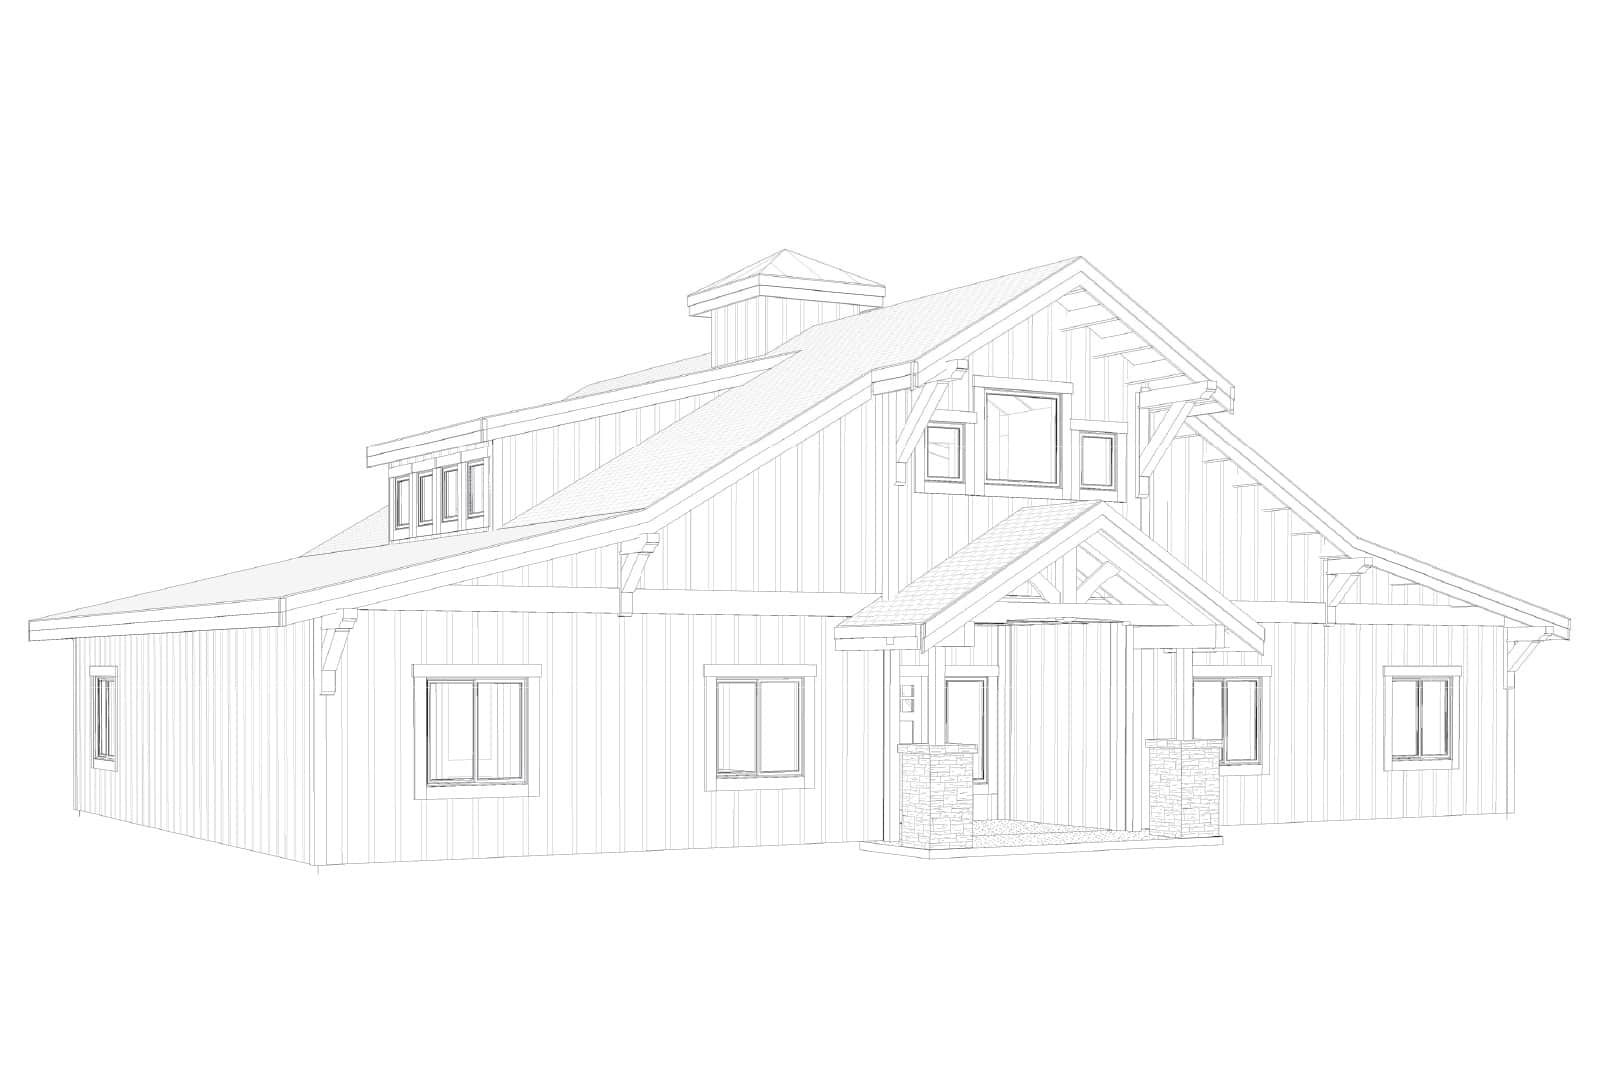 The concordia barn home kit 3 bedroom barn home plan for 3 bedroom barn house